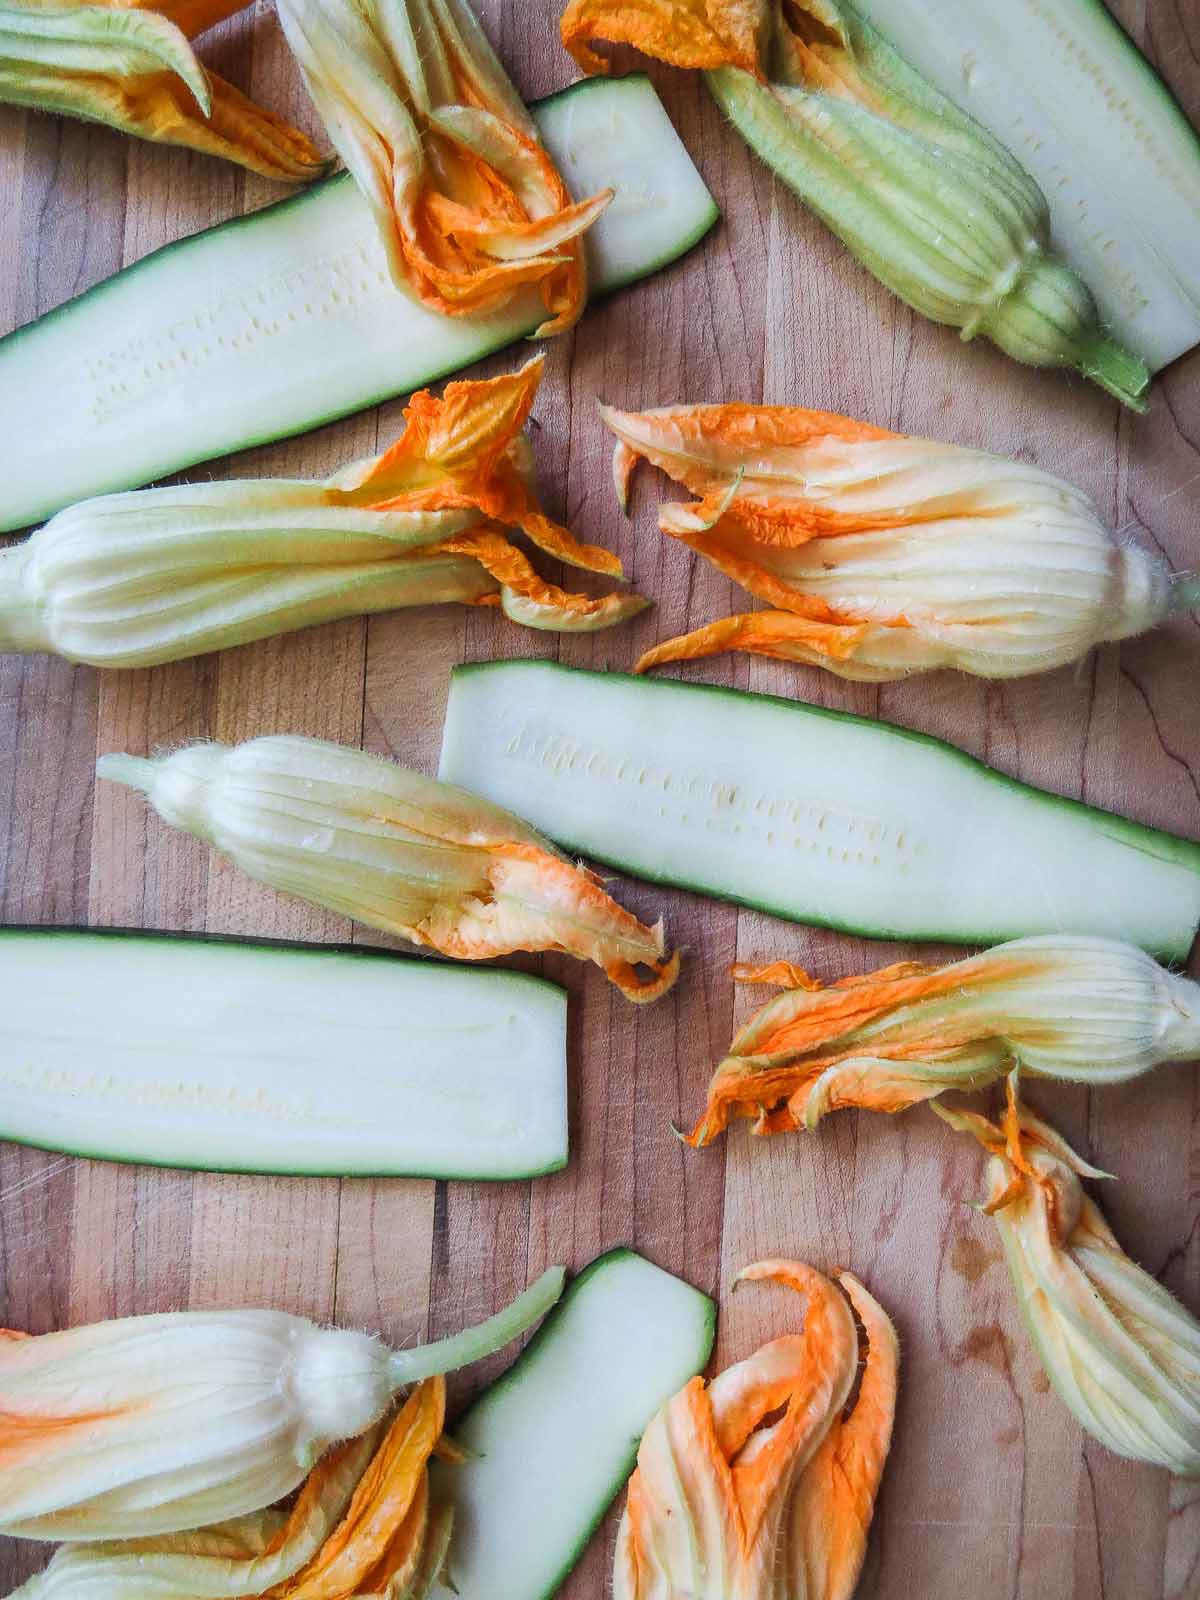 Fried Zucchini Flowers & Strips